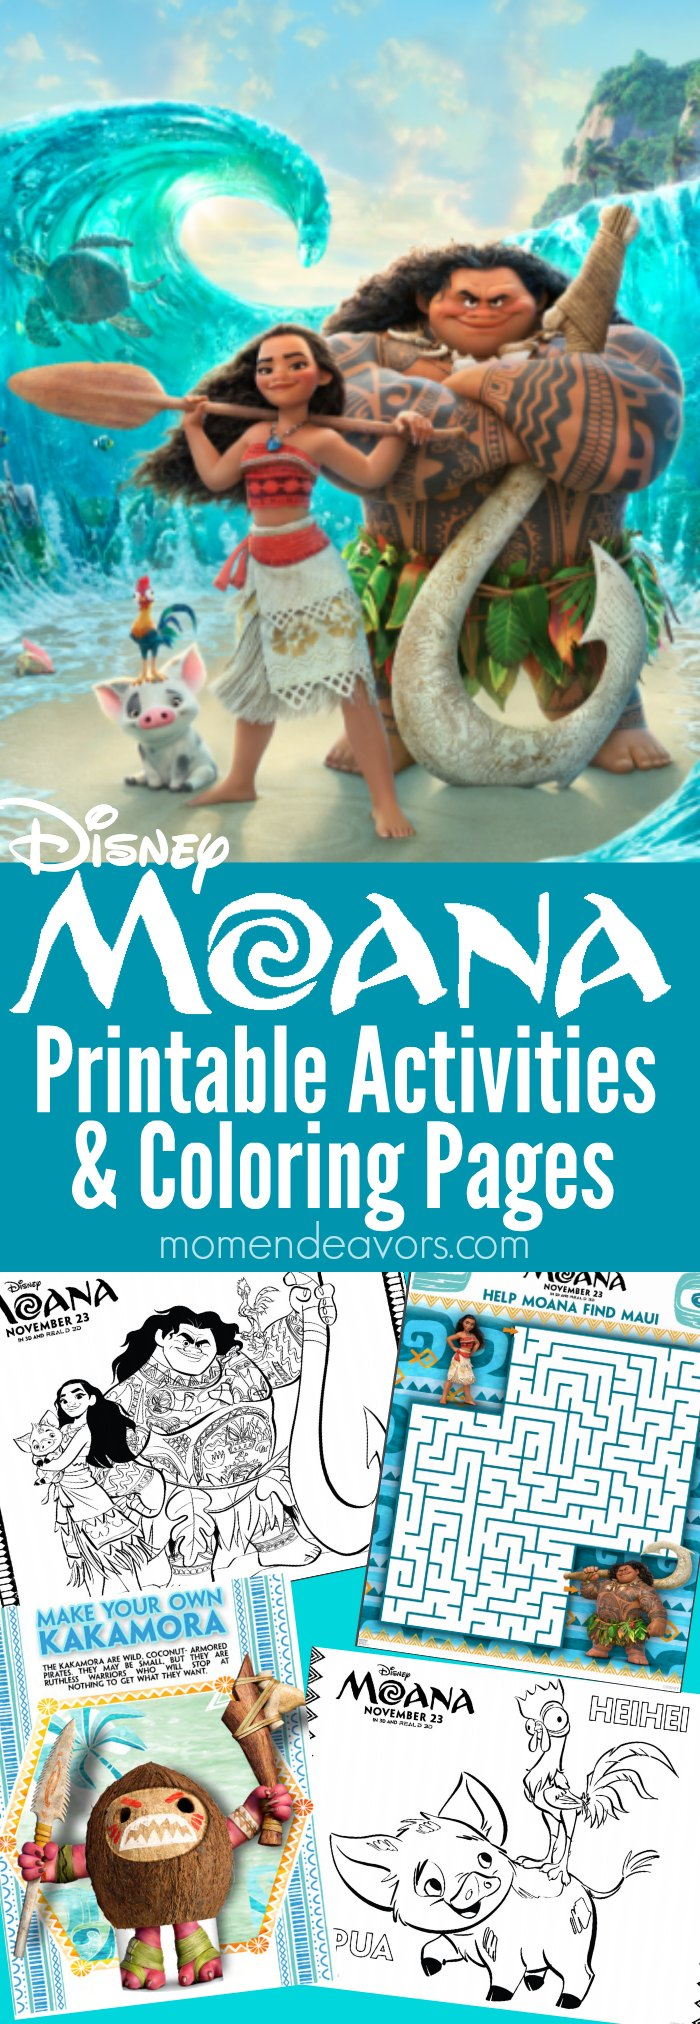 image regarding Kakamora Printable named MOANA Printable Actions Coloring Internet pages